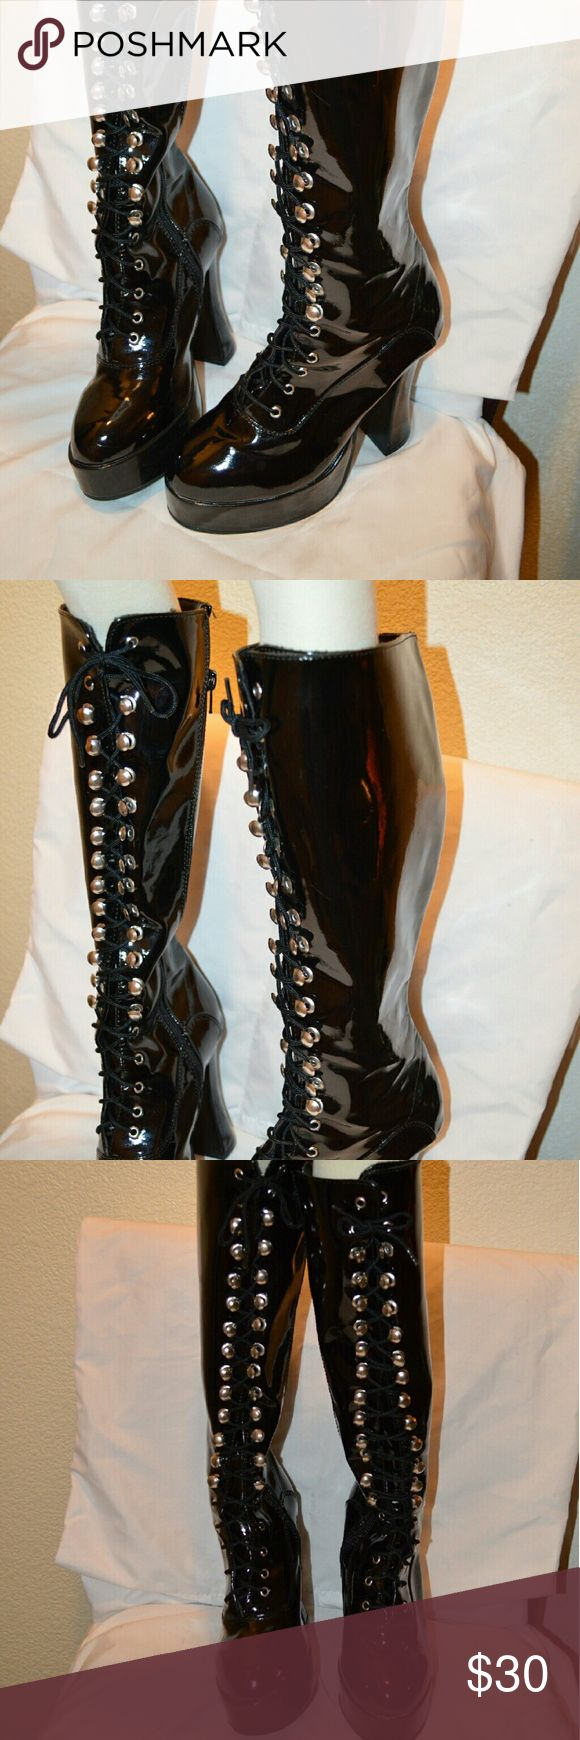 Latex boots Latex knee high boots Shoes Lace Up Boots